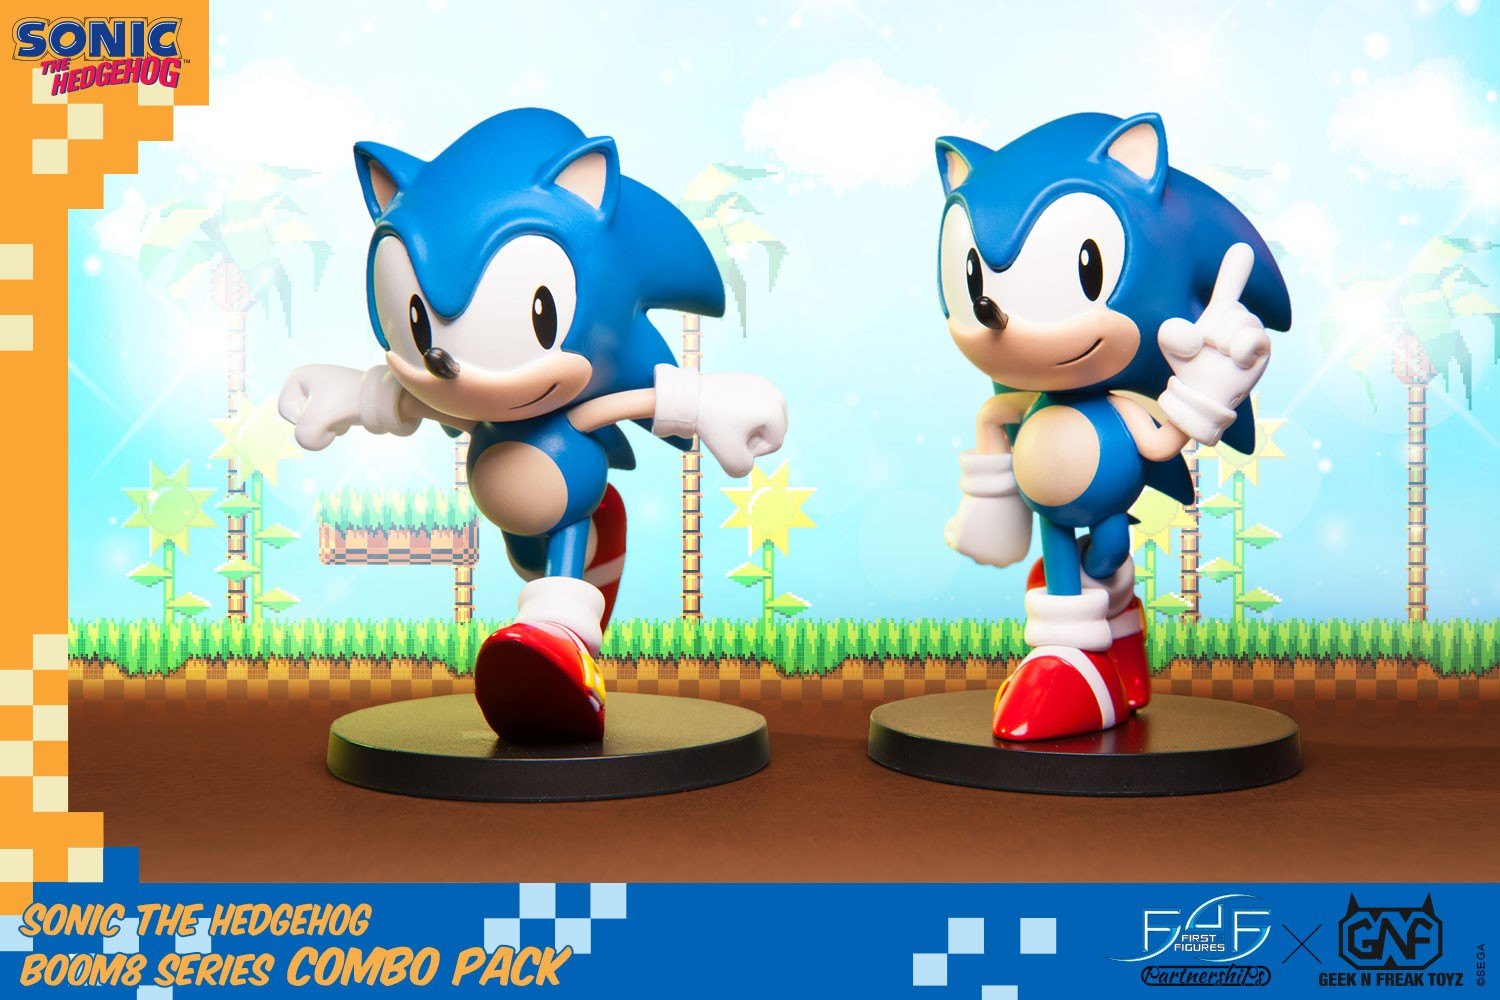 Sonic The Hedgehog Boom8 Series - Combo Pack